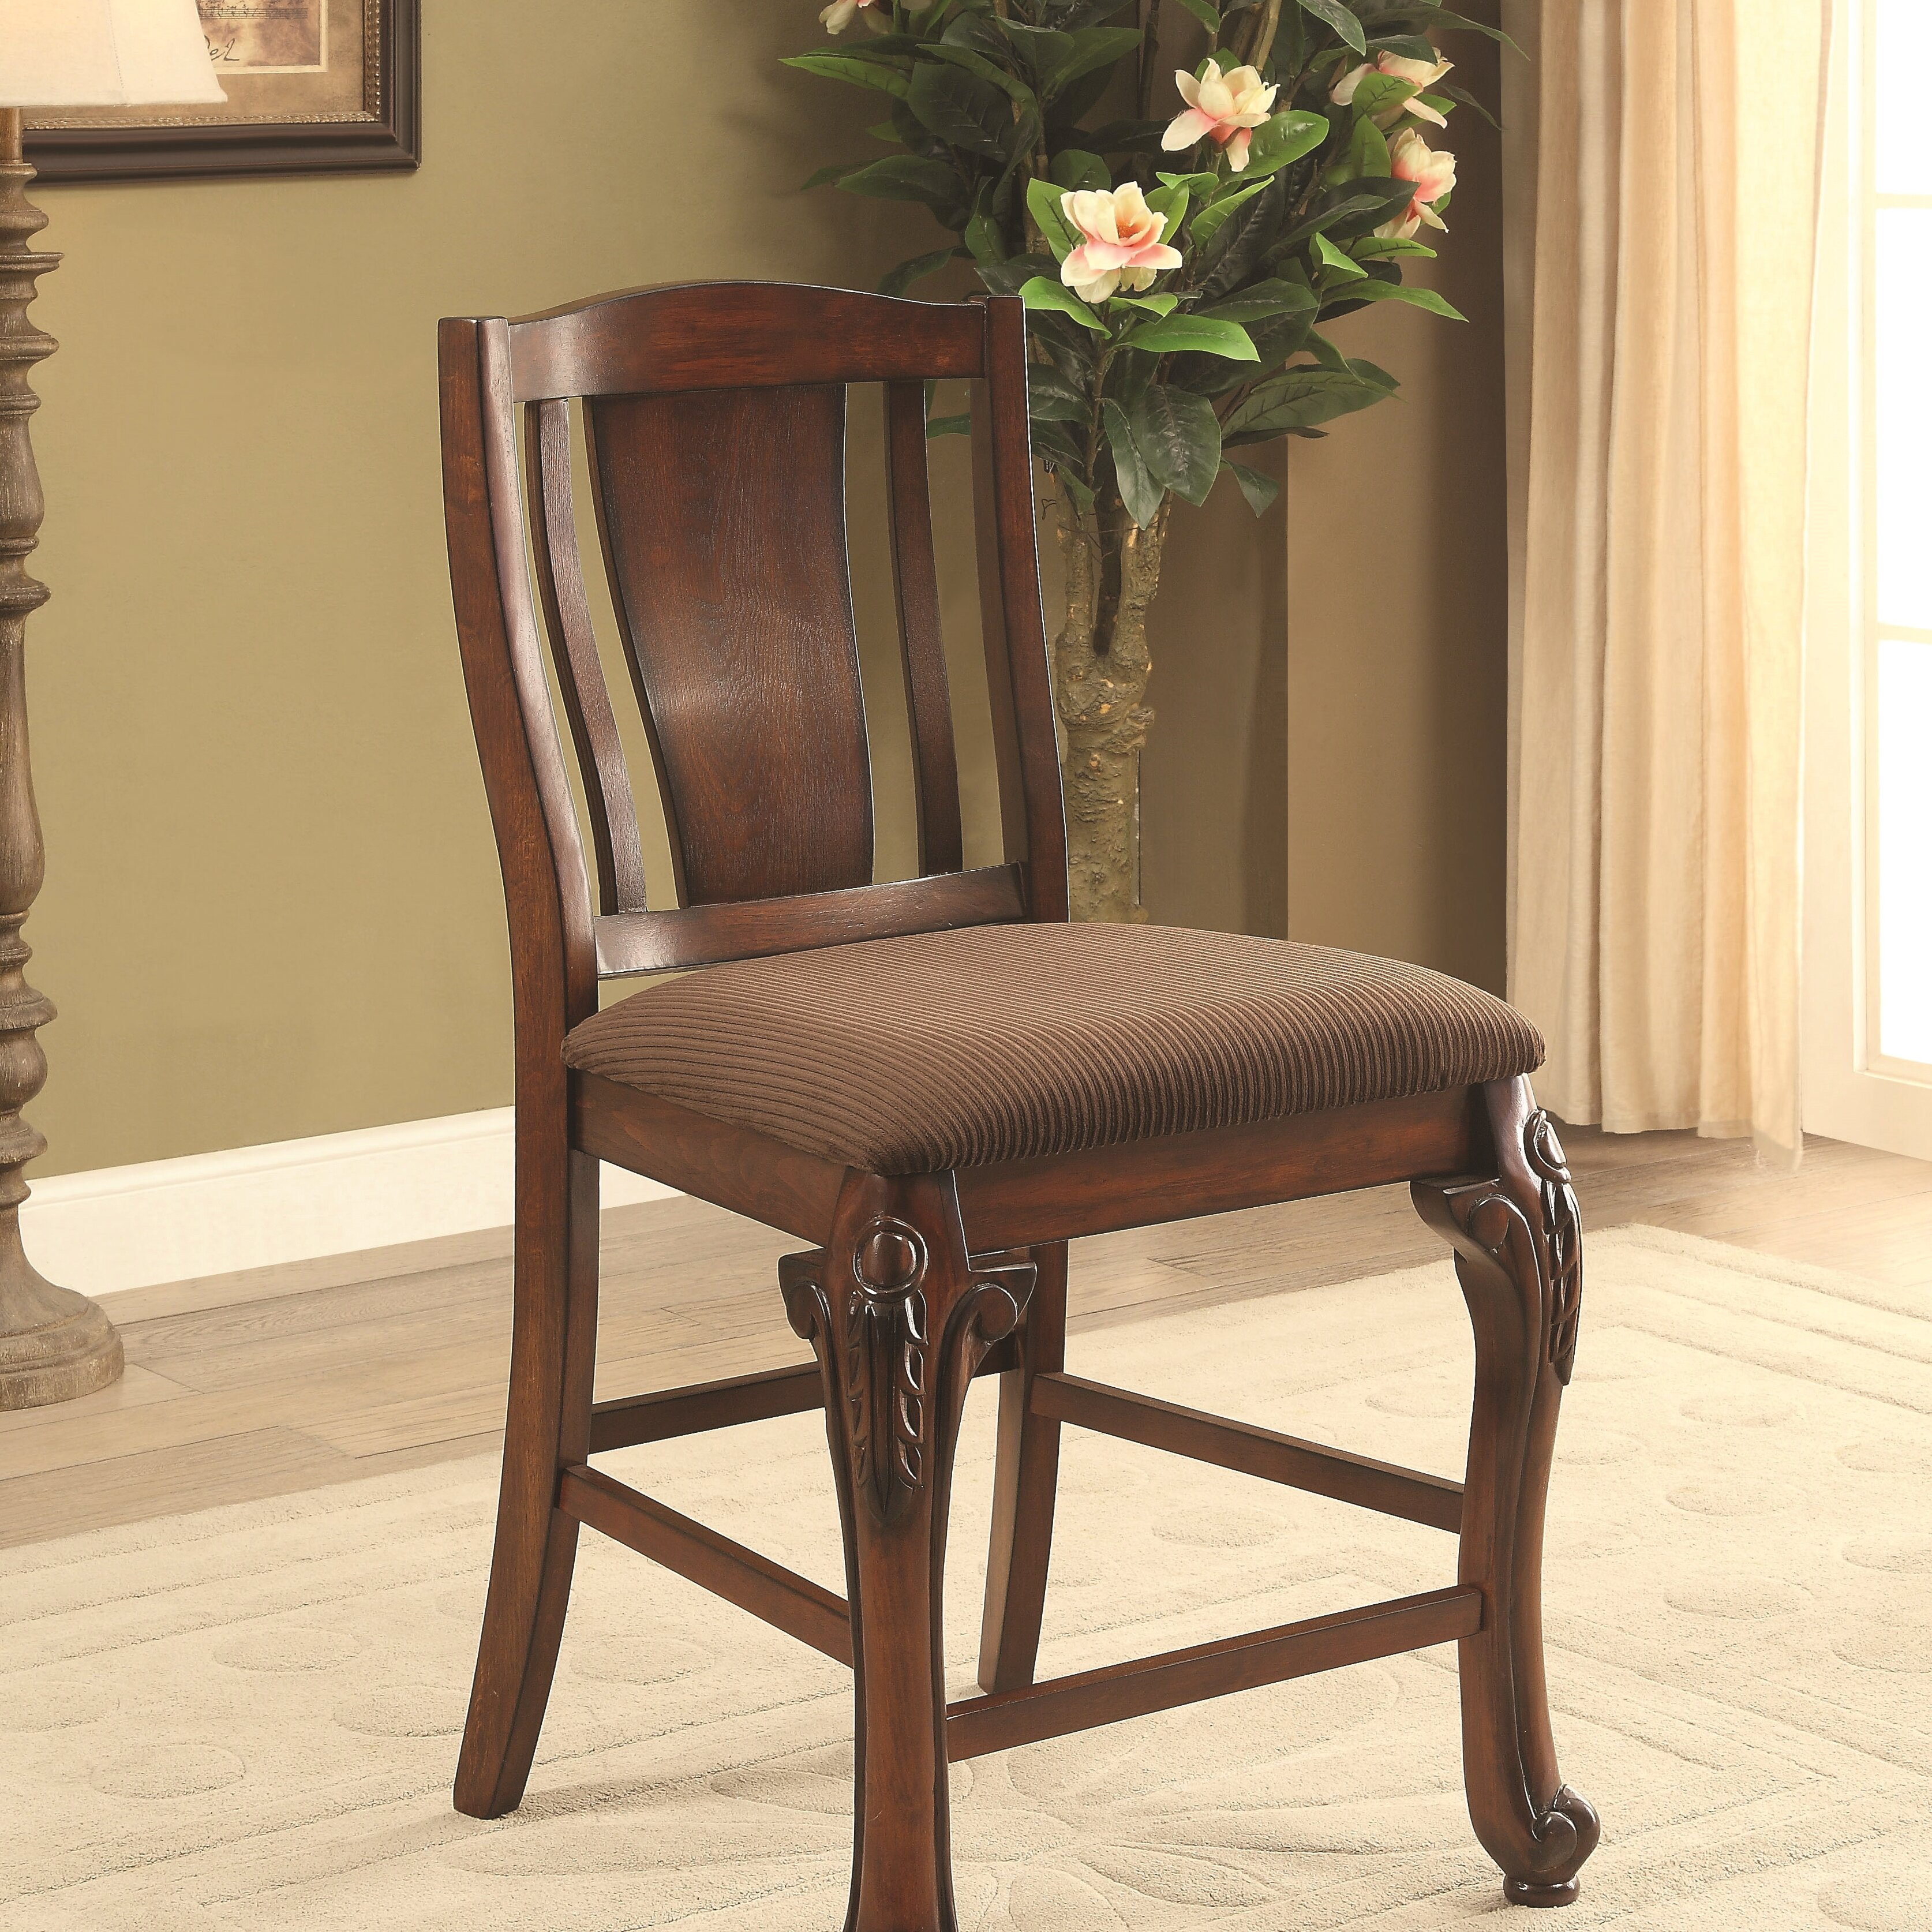 Groovy Dominey Traditional Dining Chair Squirreltailoven Fun Painted Chair Ideas Images Squirreltailovenorg